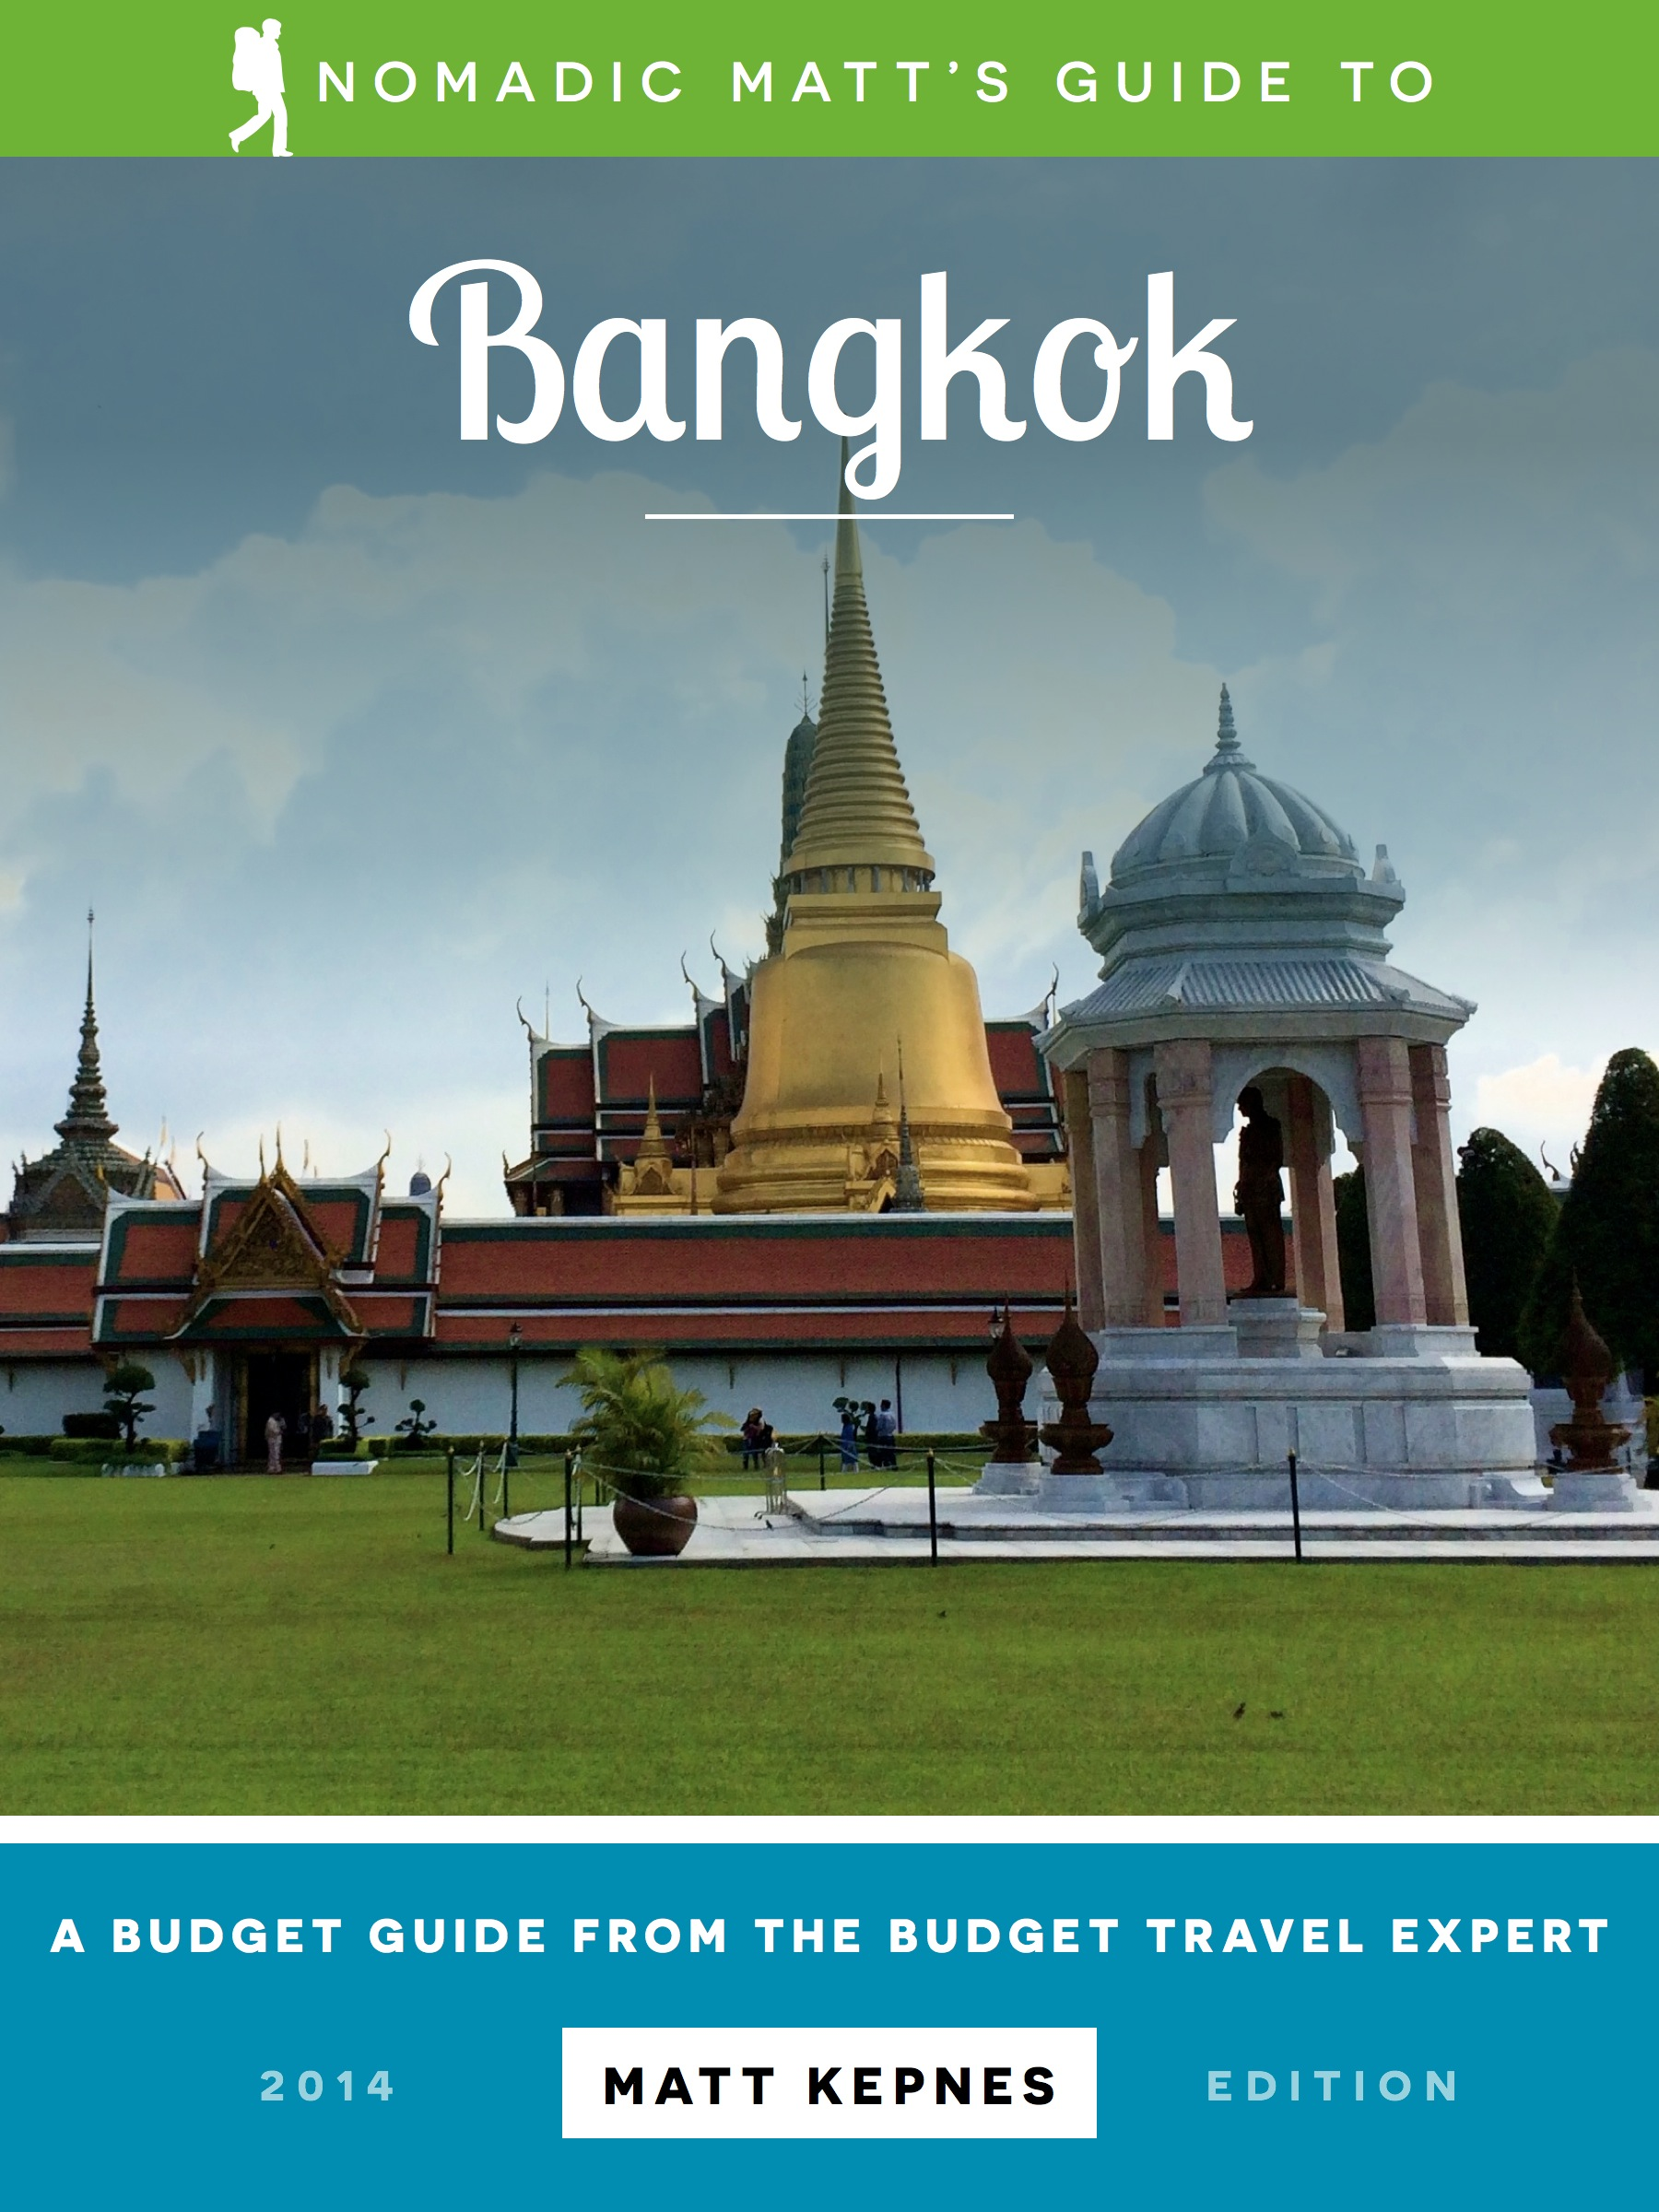 The cover of the bangkok travel guide by nomadic matt